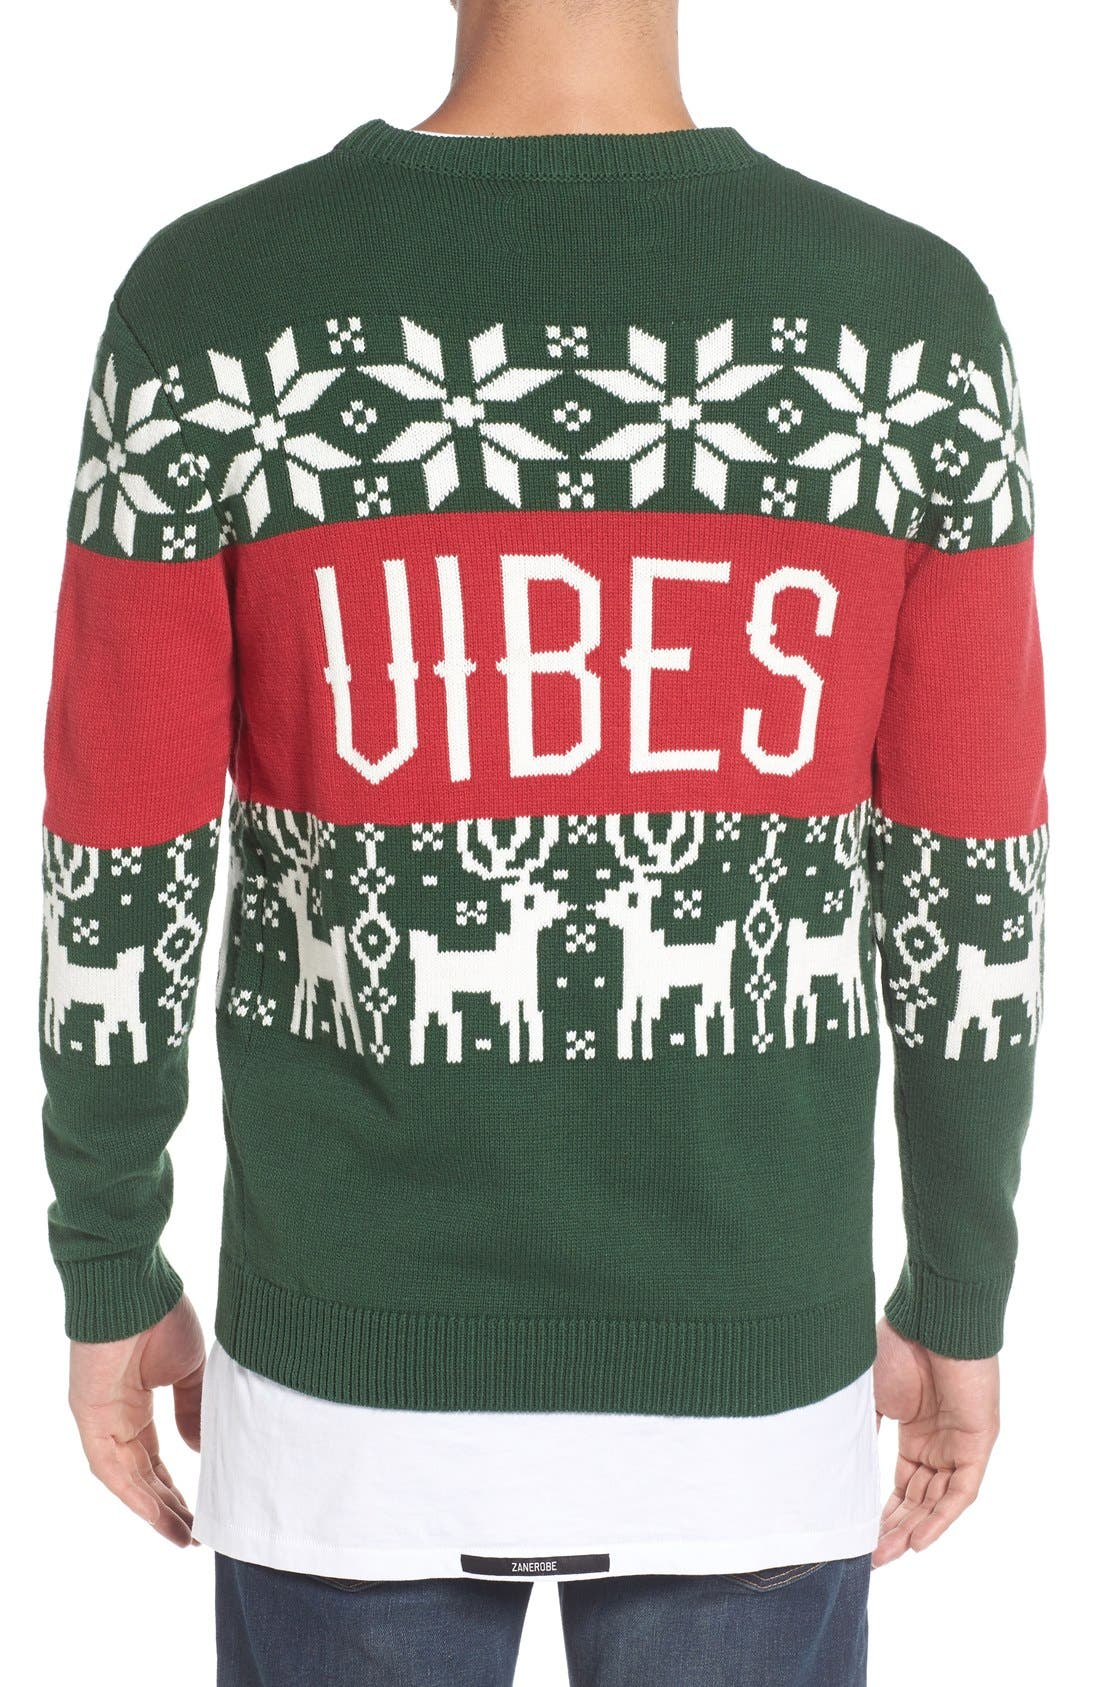 'Chill Vibes' Intarsia Crewneck Sweater,                             Alternate thumbnail 2, color,                             Red/ Green